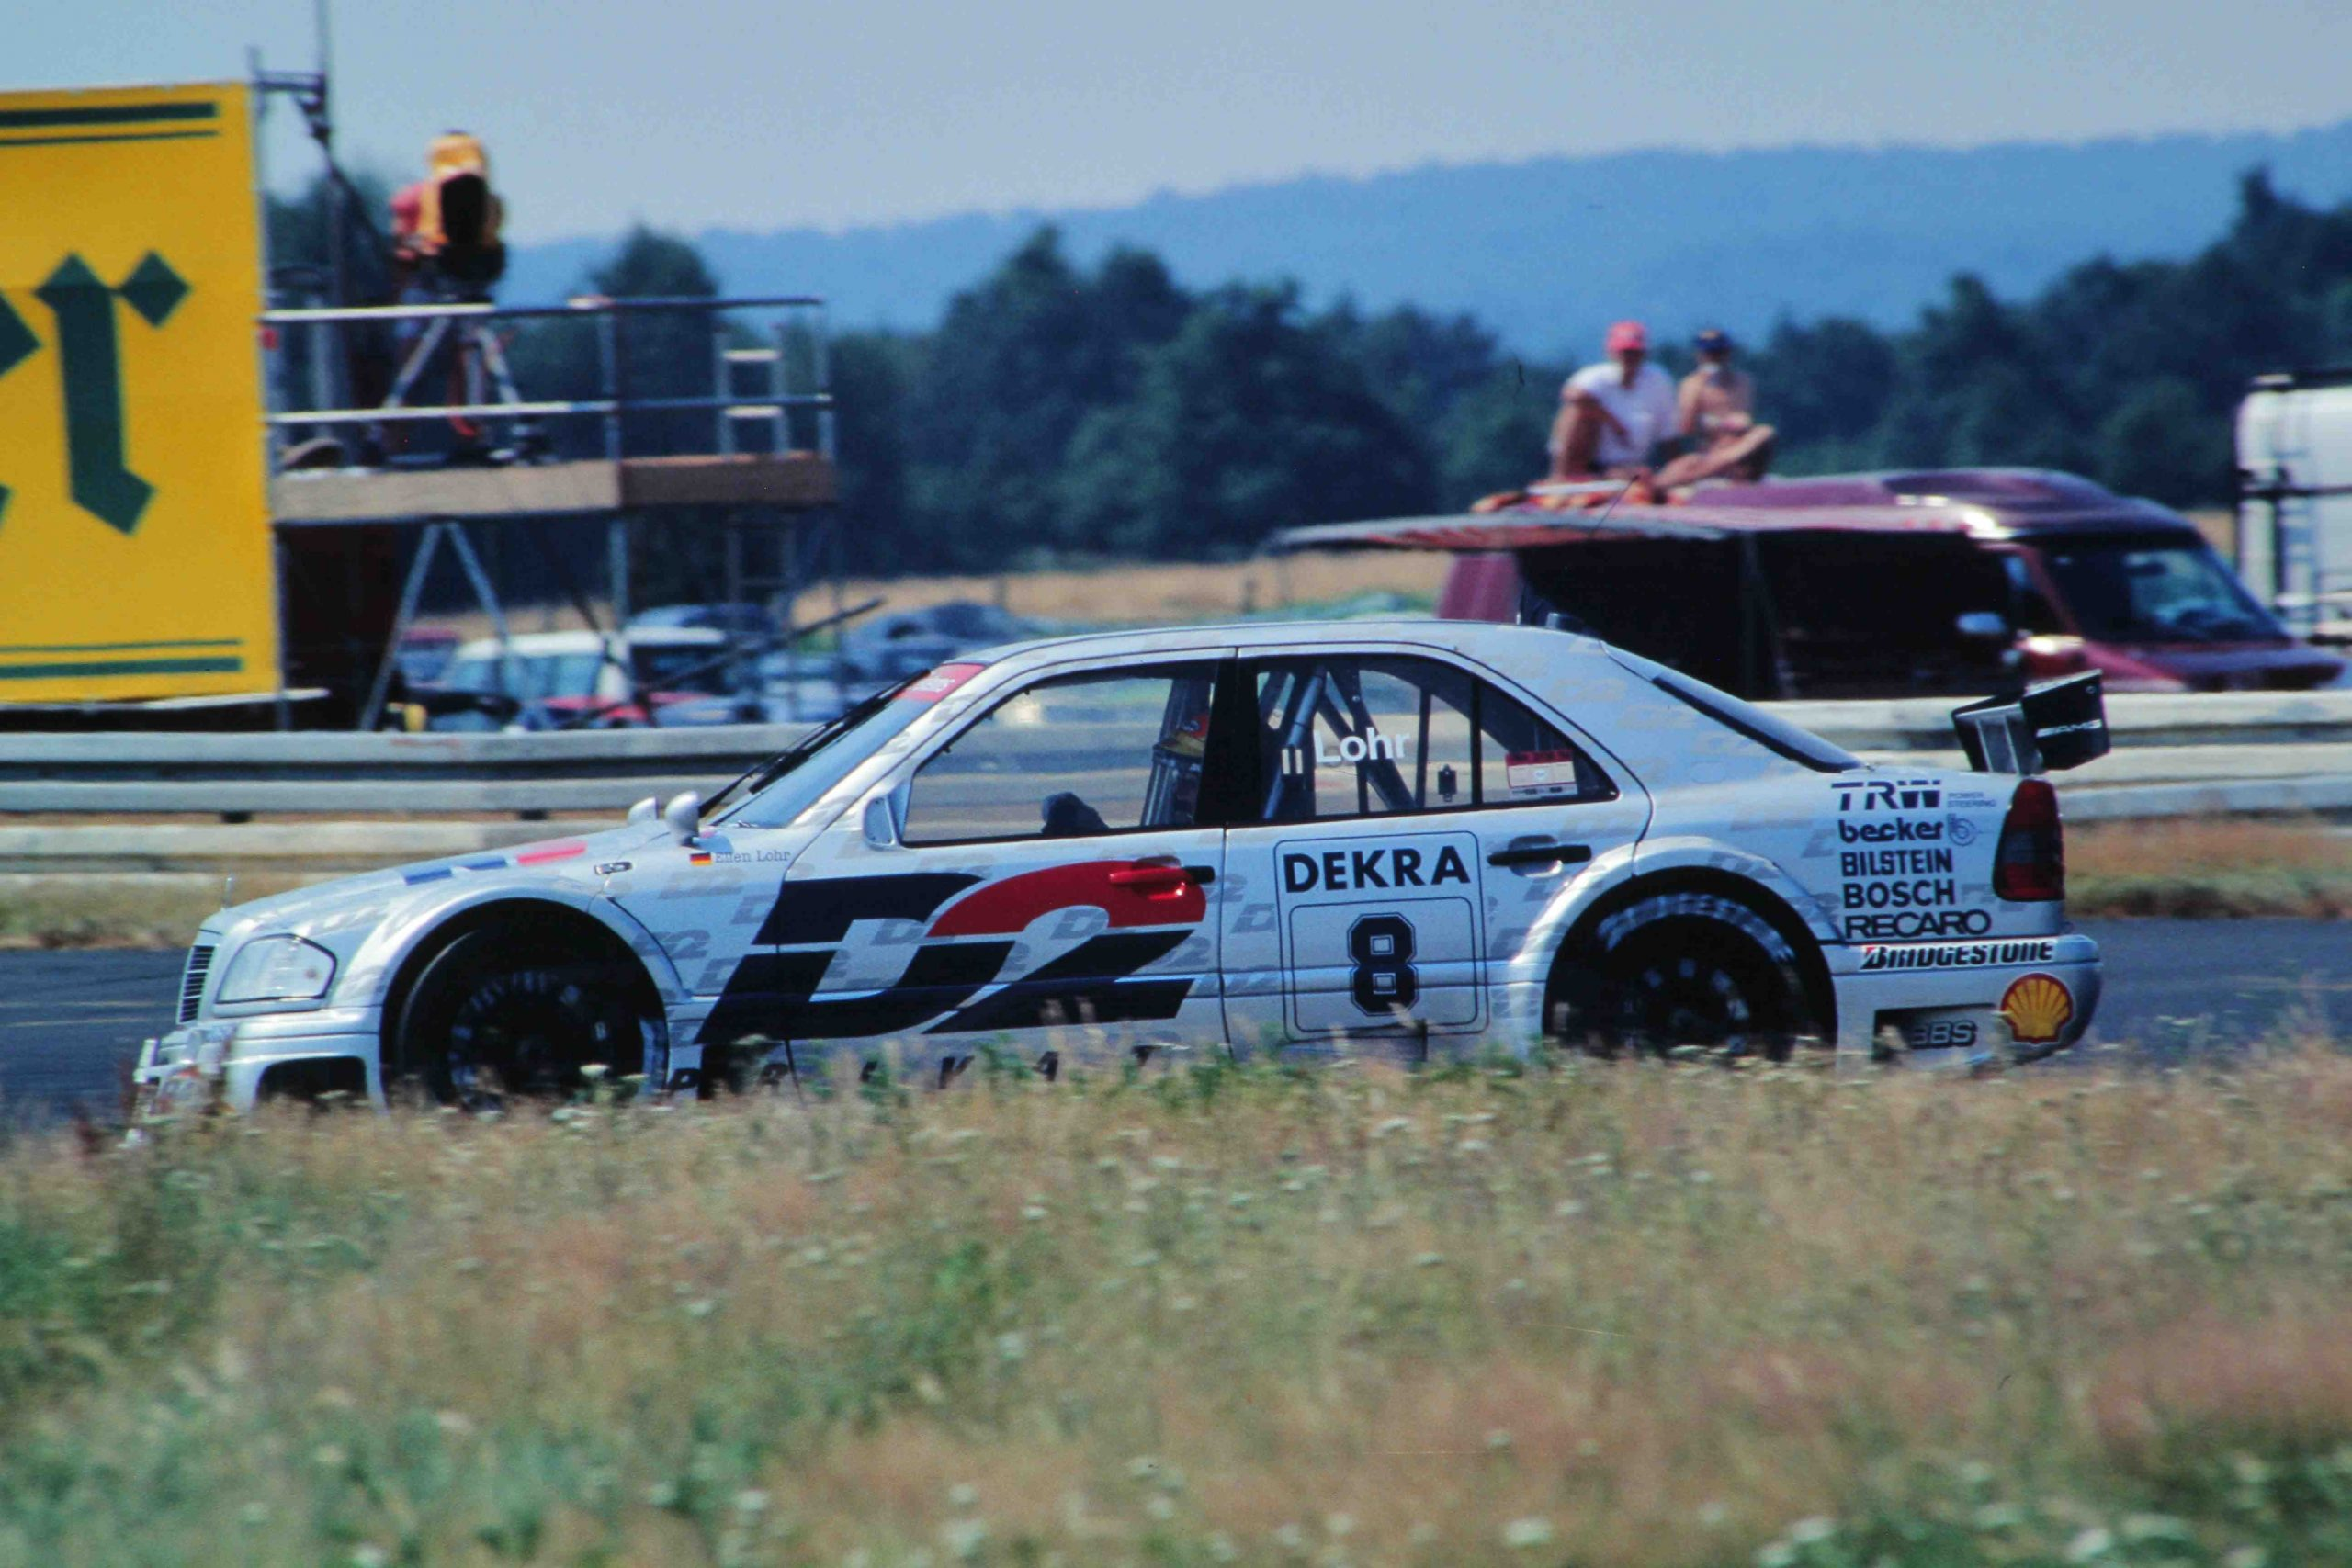 Two years in the DTM, two championships in historic touring car racing: a beautiful, fast star. An investment.